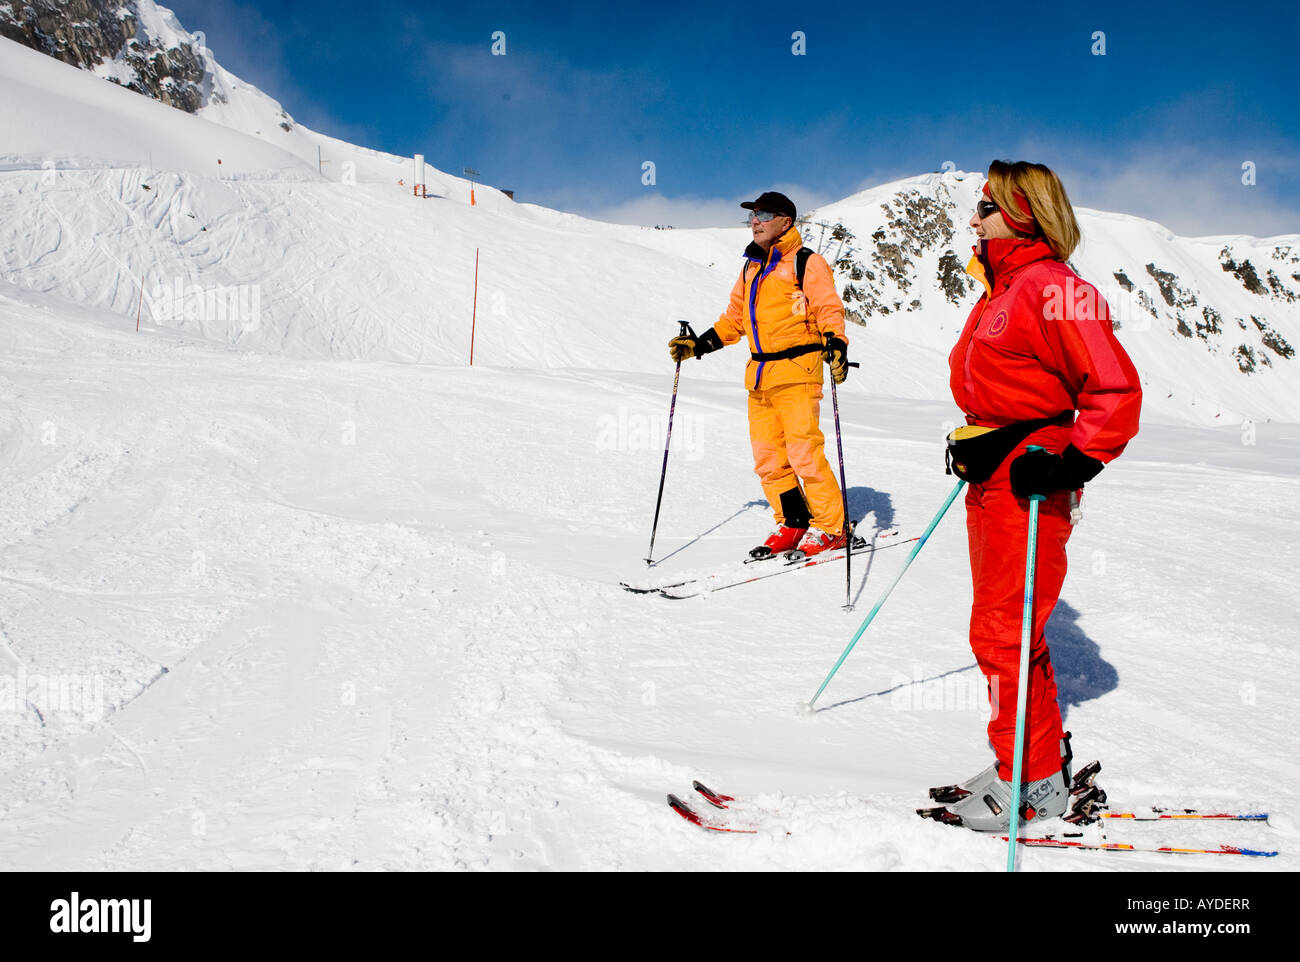 Skier On Piste In La Plagne The French Alps France Europe - Stock Image